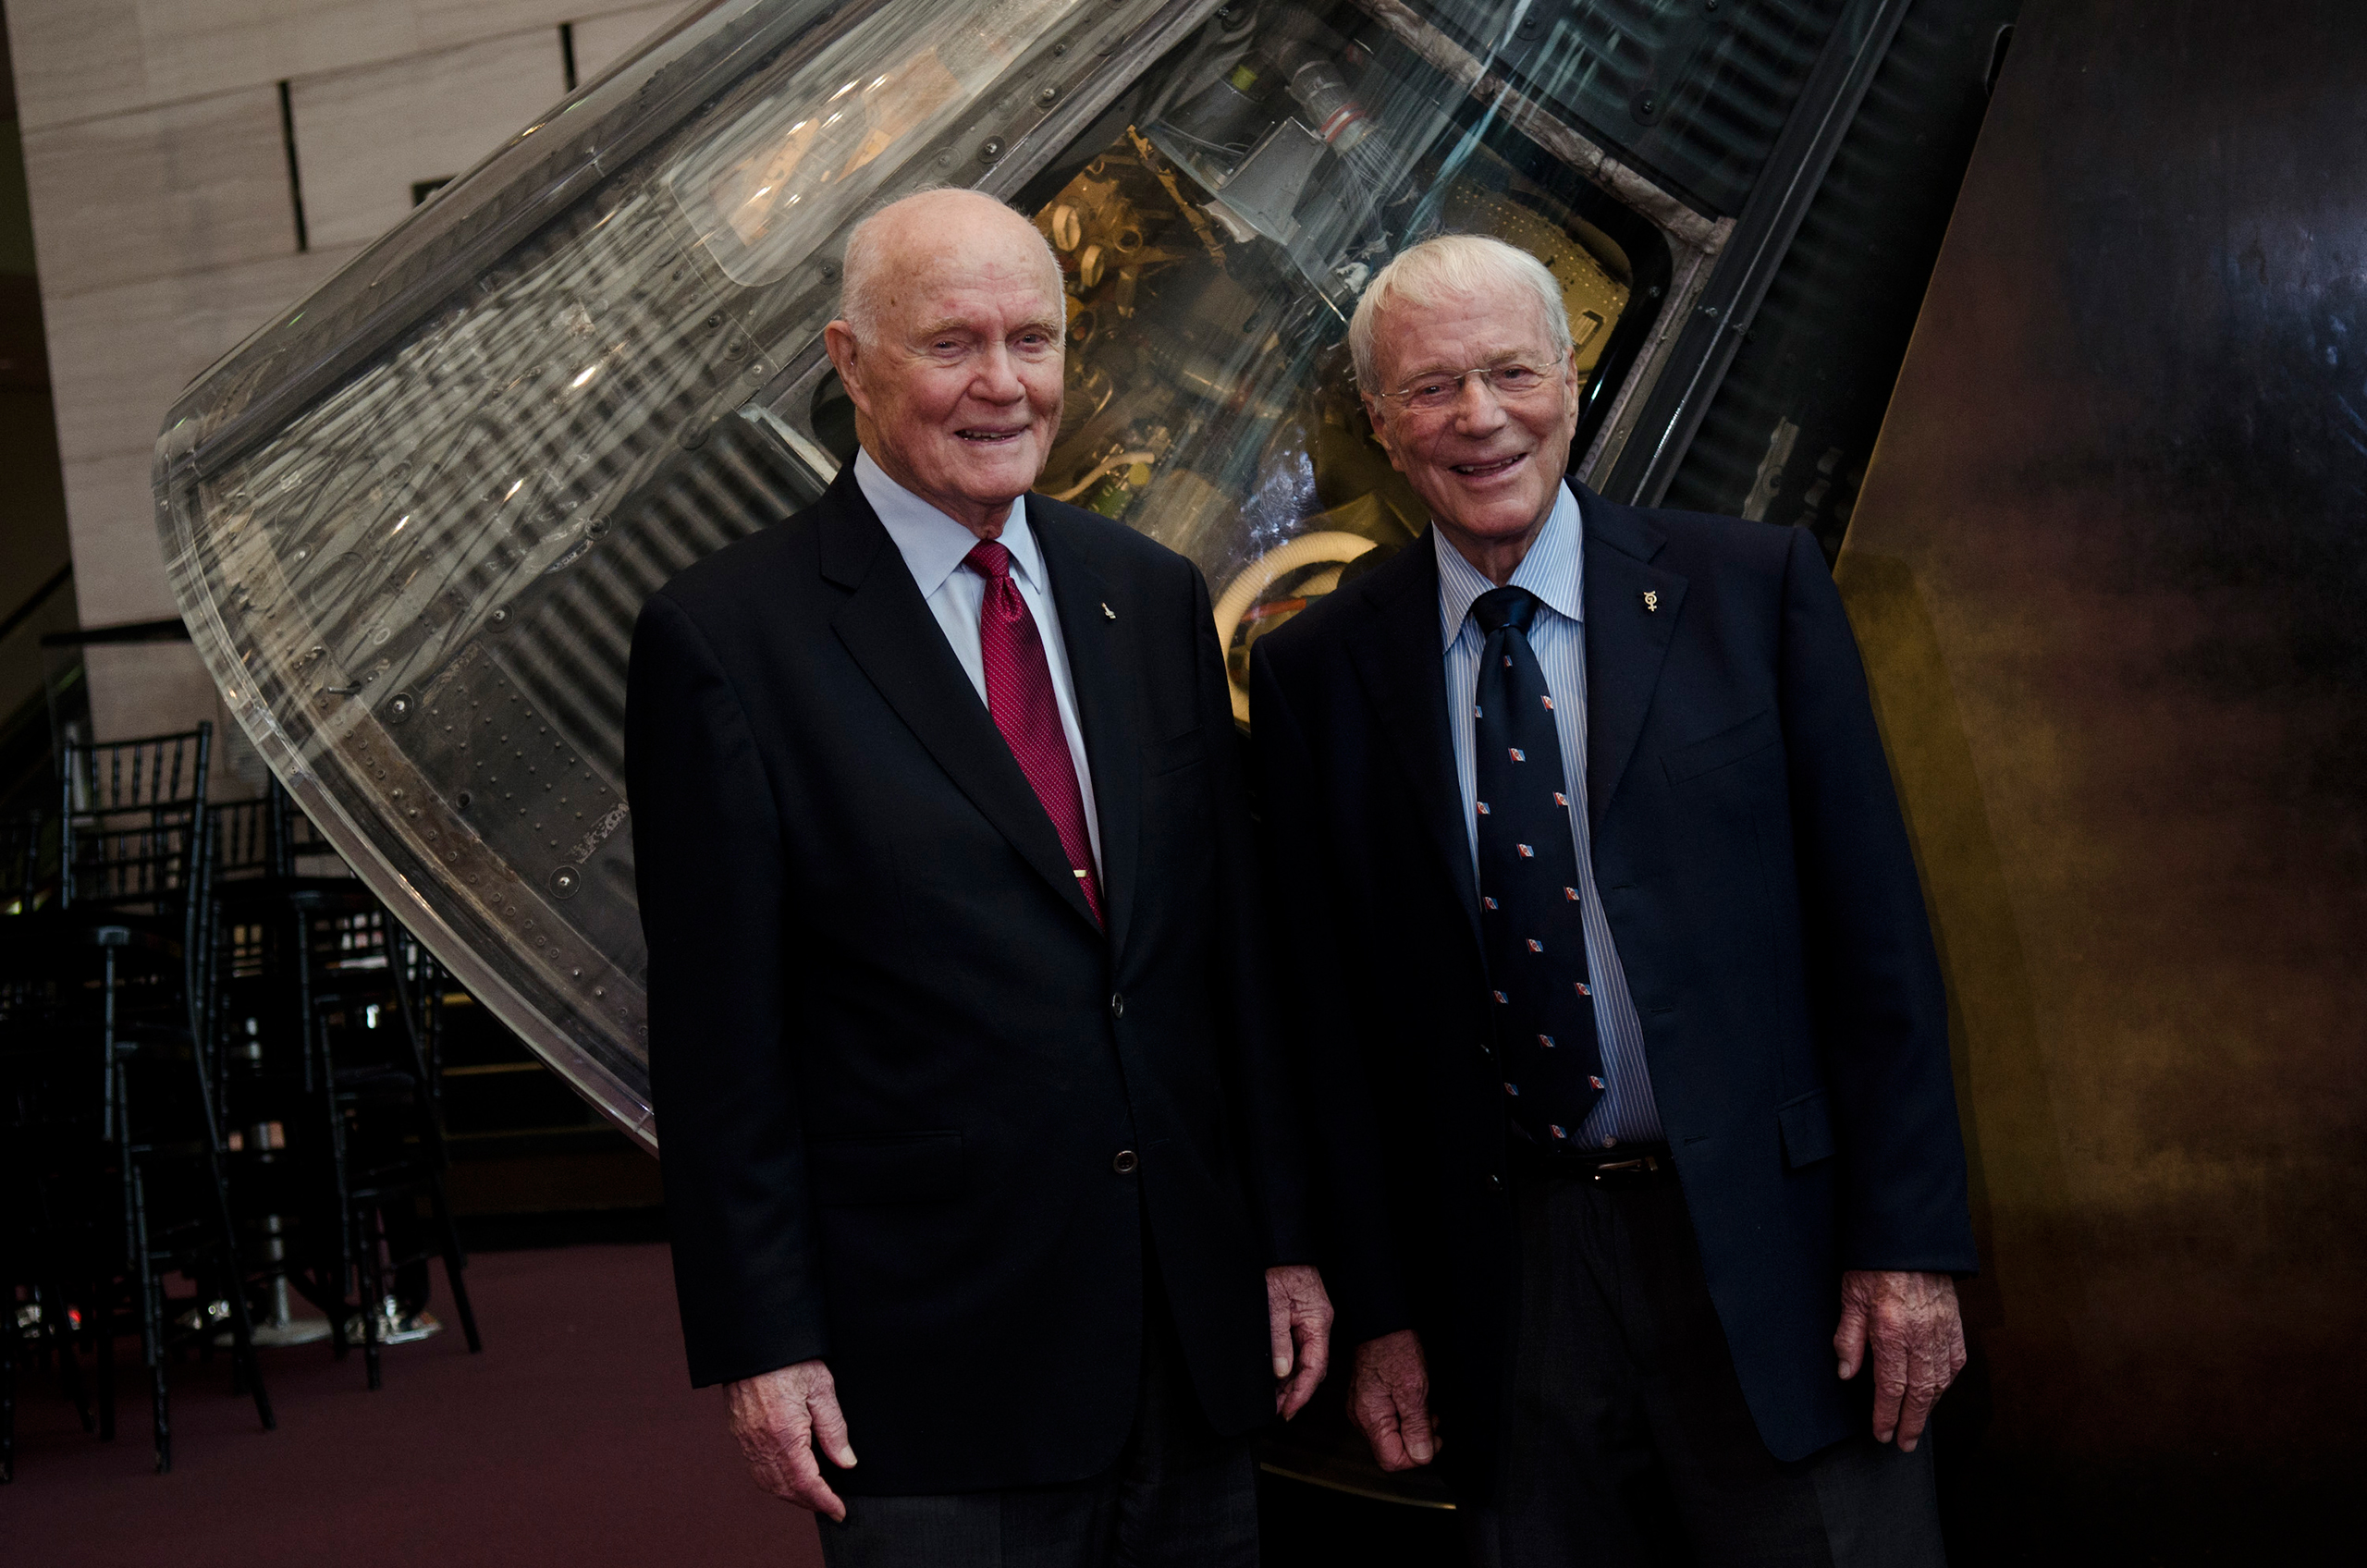 "<b>Space Veterans</b> Glenn and Carpenter, the last two survivors of the Original Seven, at the National Air and Space Museum in Washington in June 2011. A few weeks later, on July 8, the U.S. launched its last shuttle mission. Glenn mourned the end of the program, telling CBS, ""We will not have our own means of getting into space, which I think is too bad. I don't like this at all."" But the veteran astronaut did not believe the end of the shuttle would mean the end of America's space program: ""I think we've had 50 years' job well done, but that's just the precursor to even greater things in the future."""